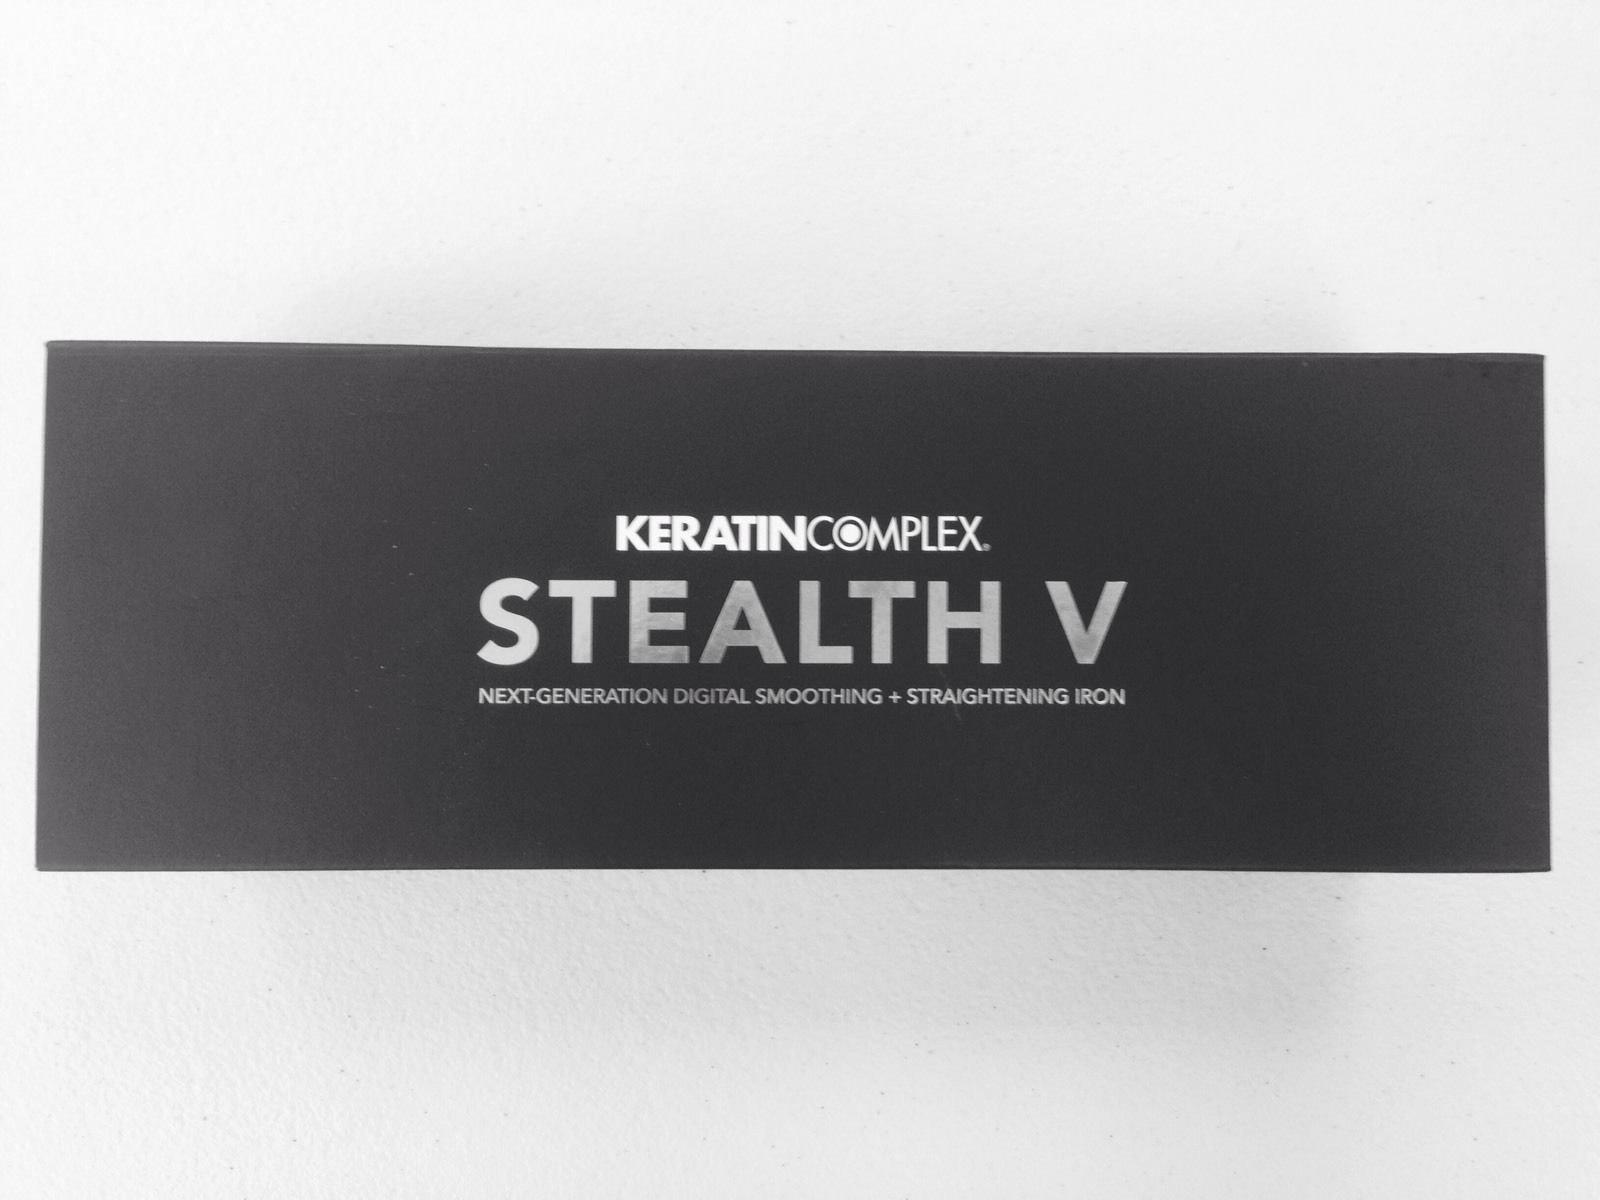 Keratin Complex Stealth V Digital Smoothing and Straightening Iron